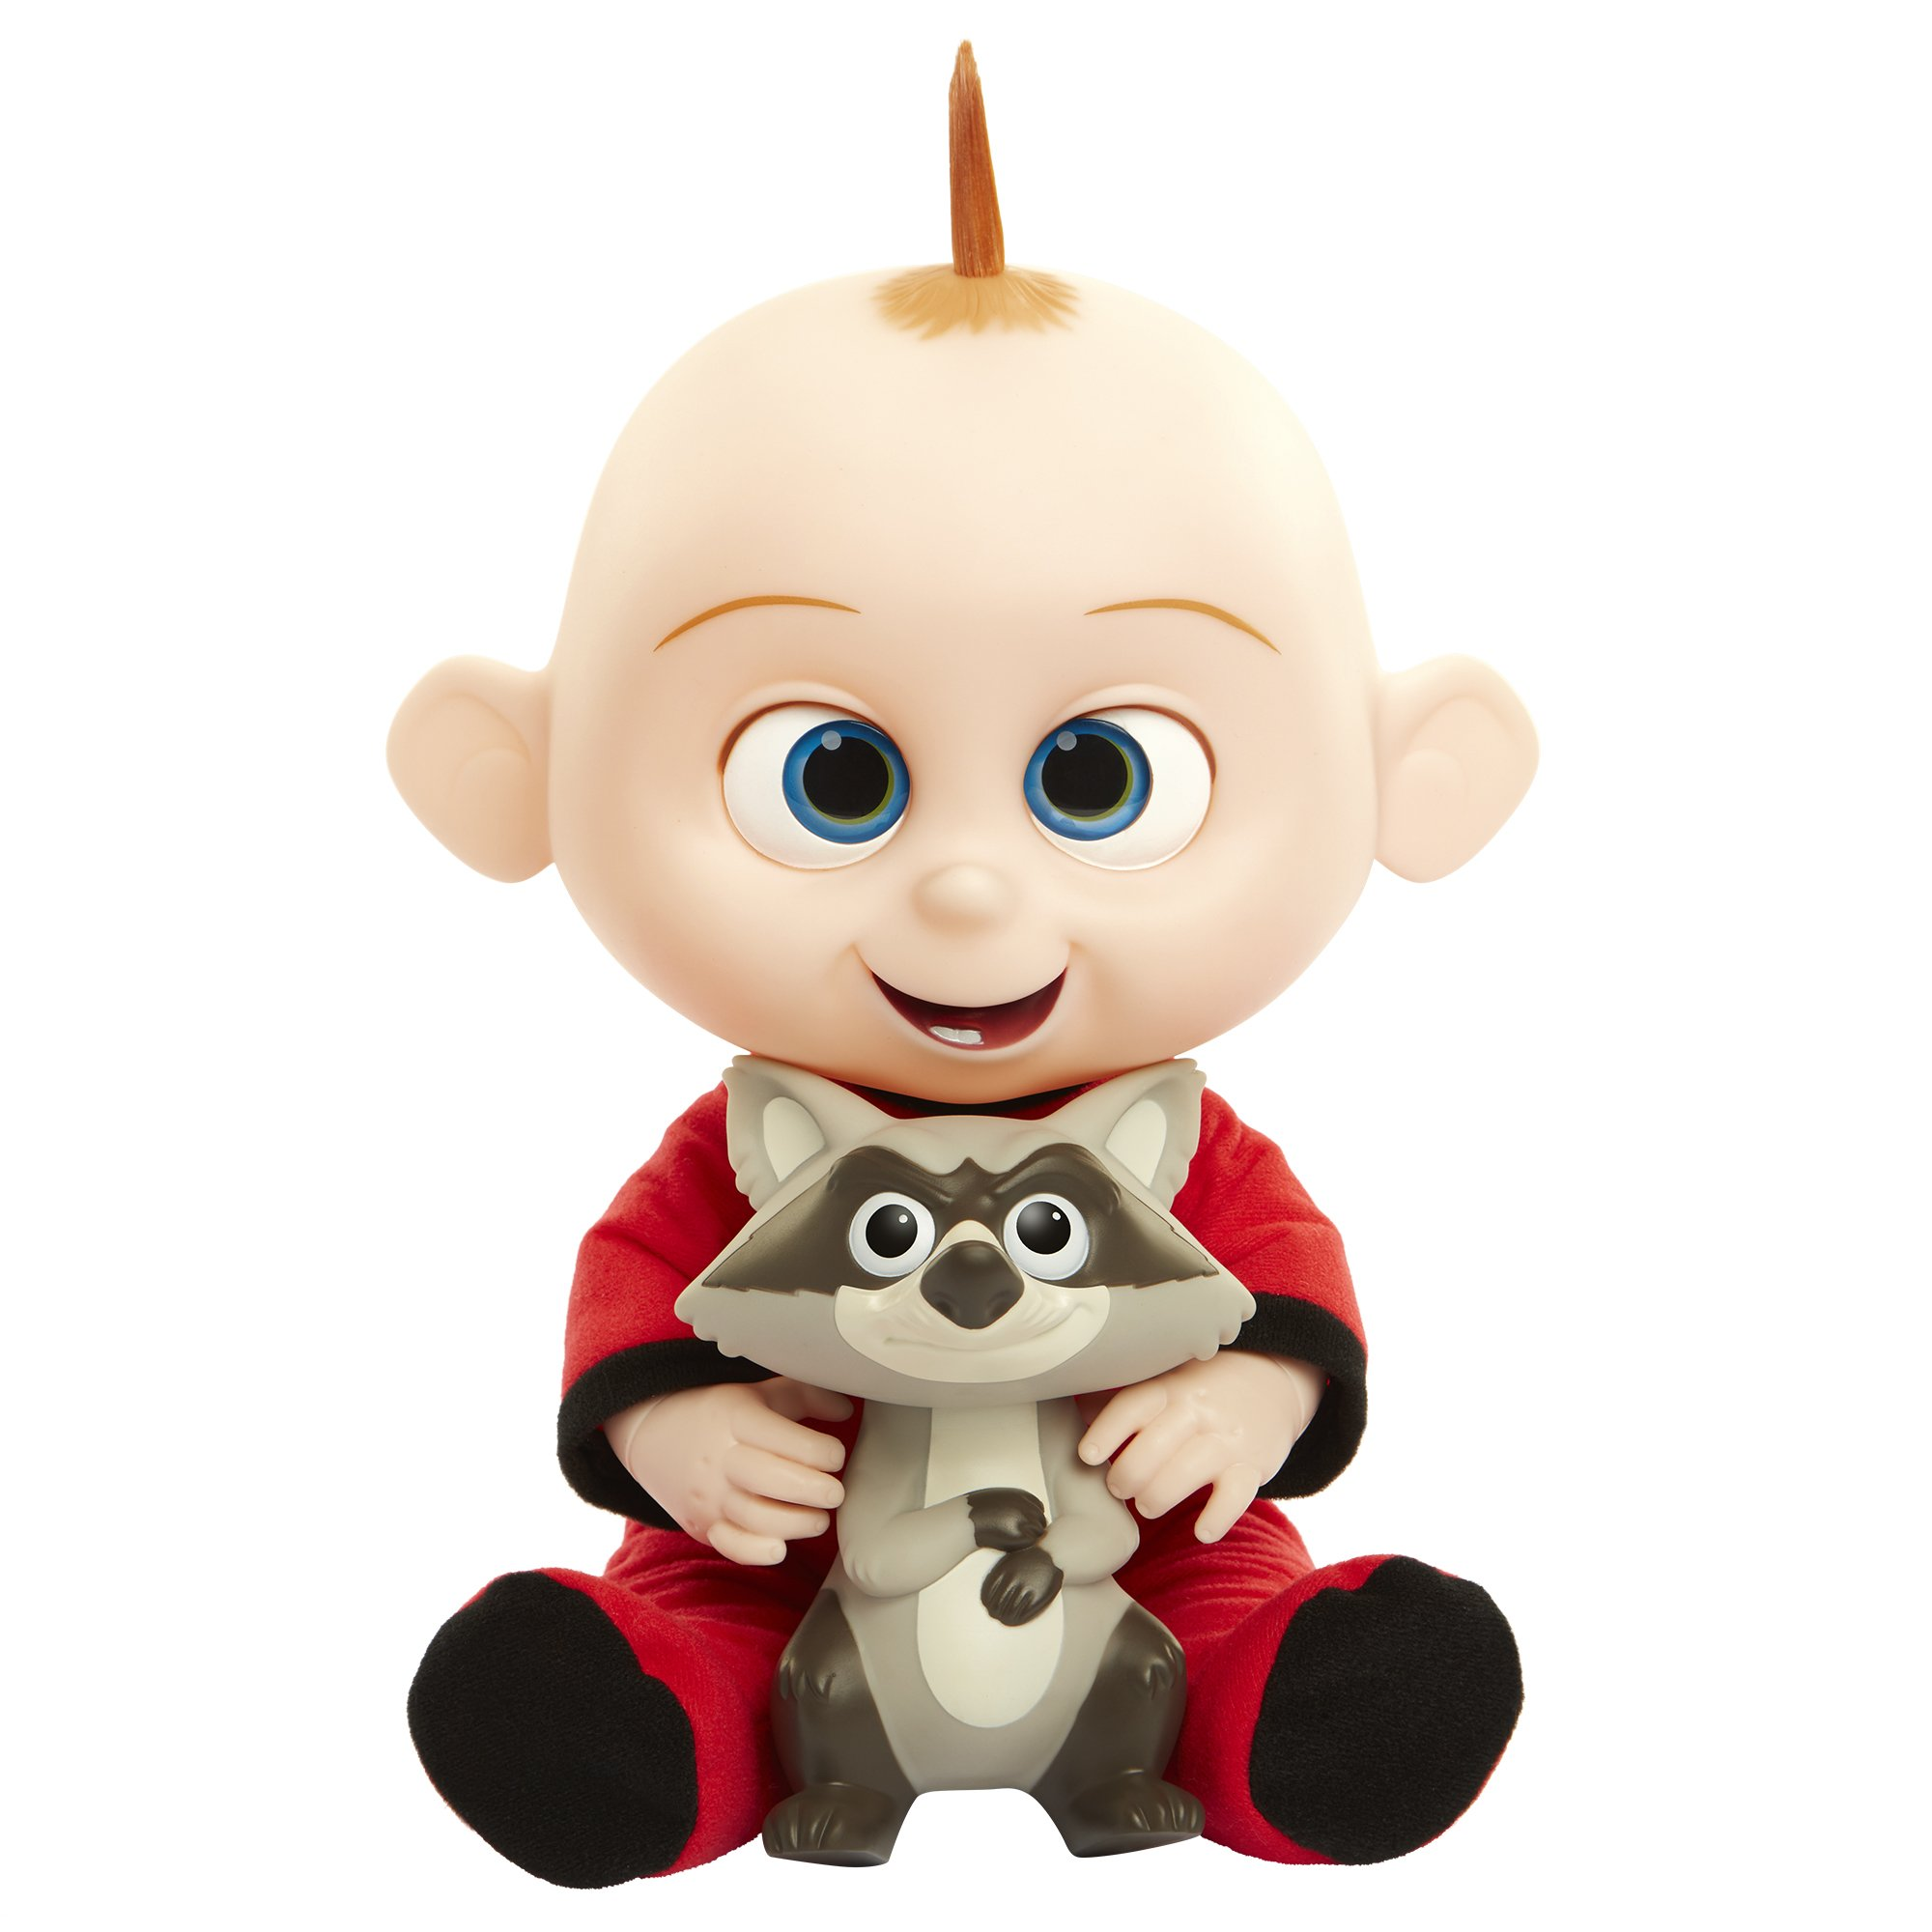 The Incredibles 2 Jack-Jack Plush-Figure Features Lights & Sounds and comes with Raccoon Toy by The Incredibles 2 (Image #1)